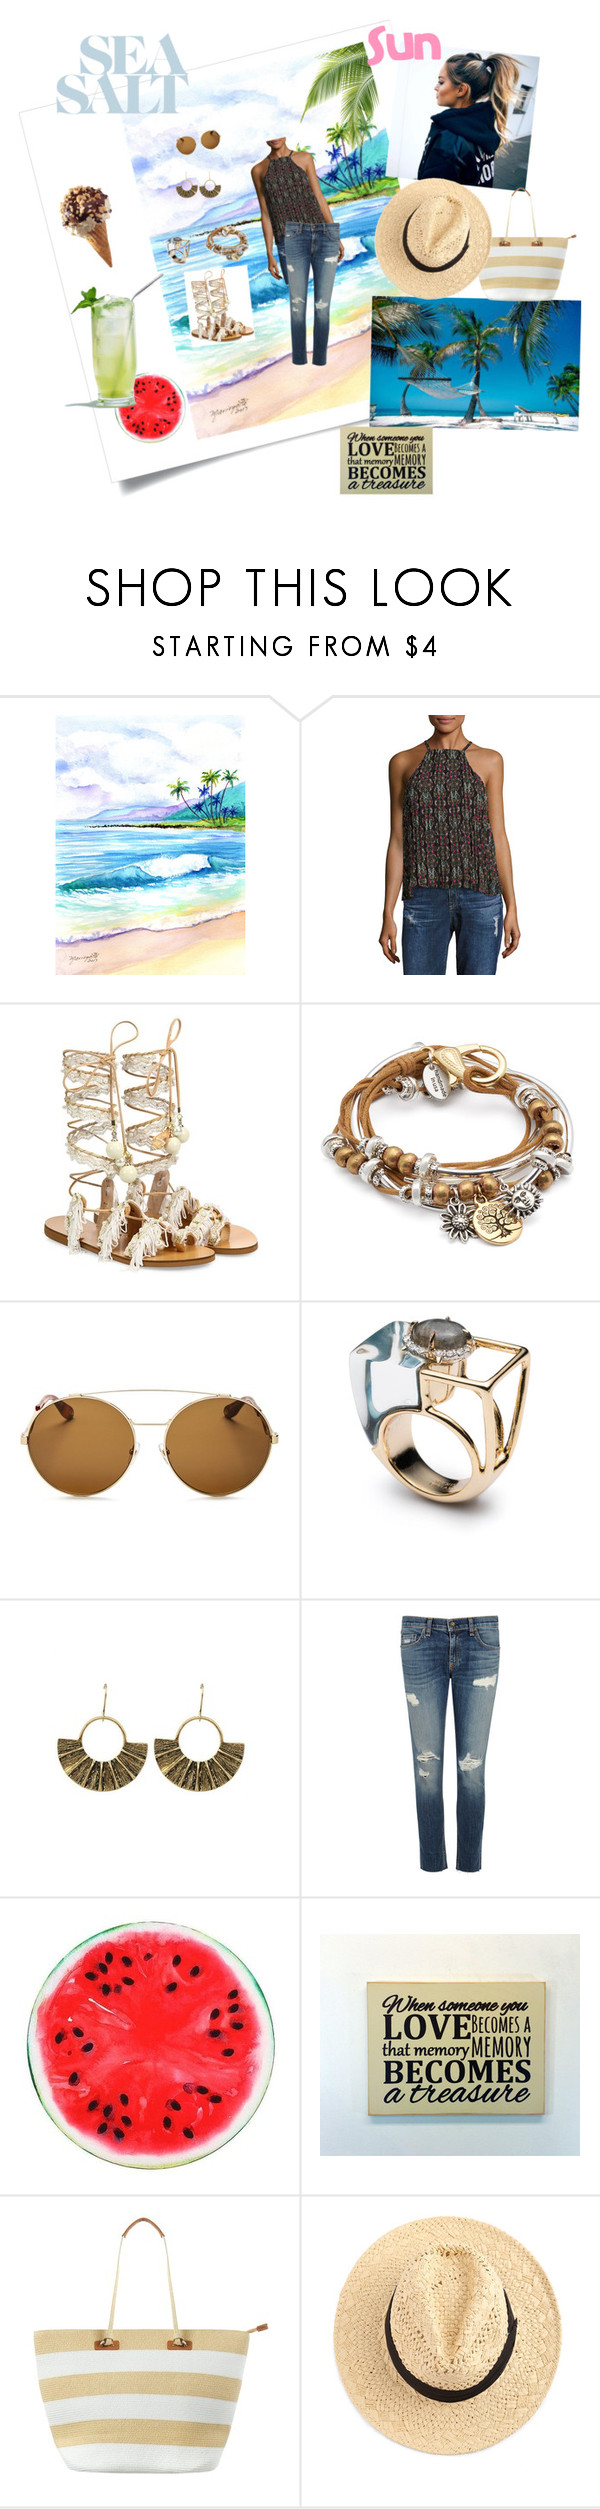 """""""Beach"""" by fashionrx ❤ liked on Polyvore featuring Likely, Elina Linardaki, Lizzy James, Givenchy, Alexis Bittar, rag & bone/JEAN and Phase Eight"""